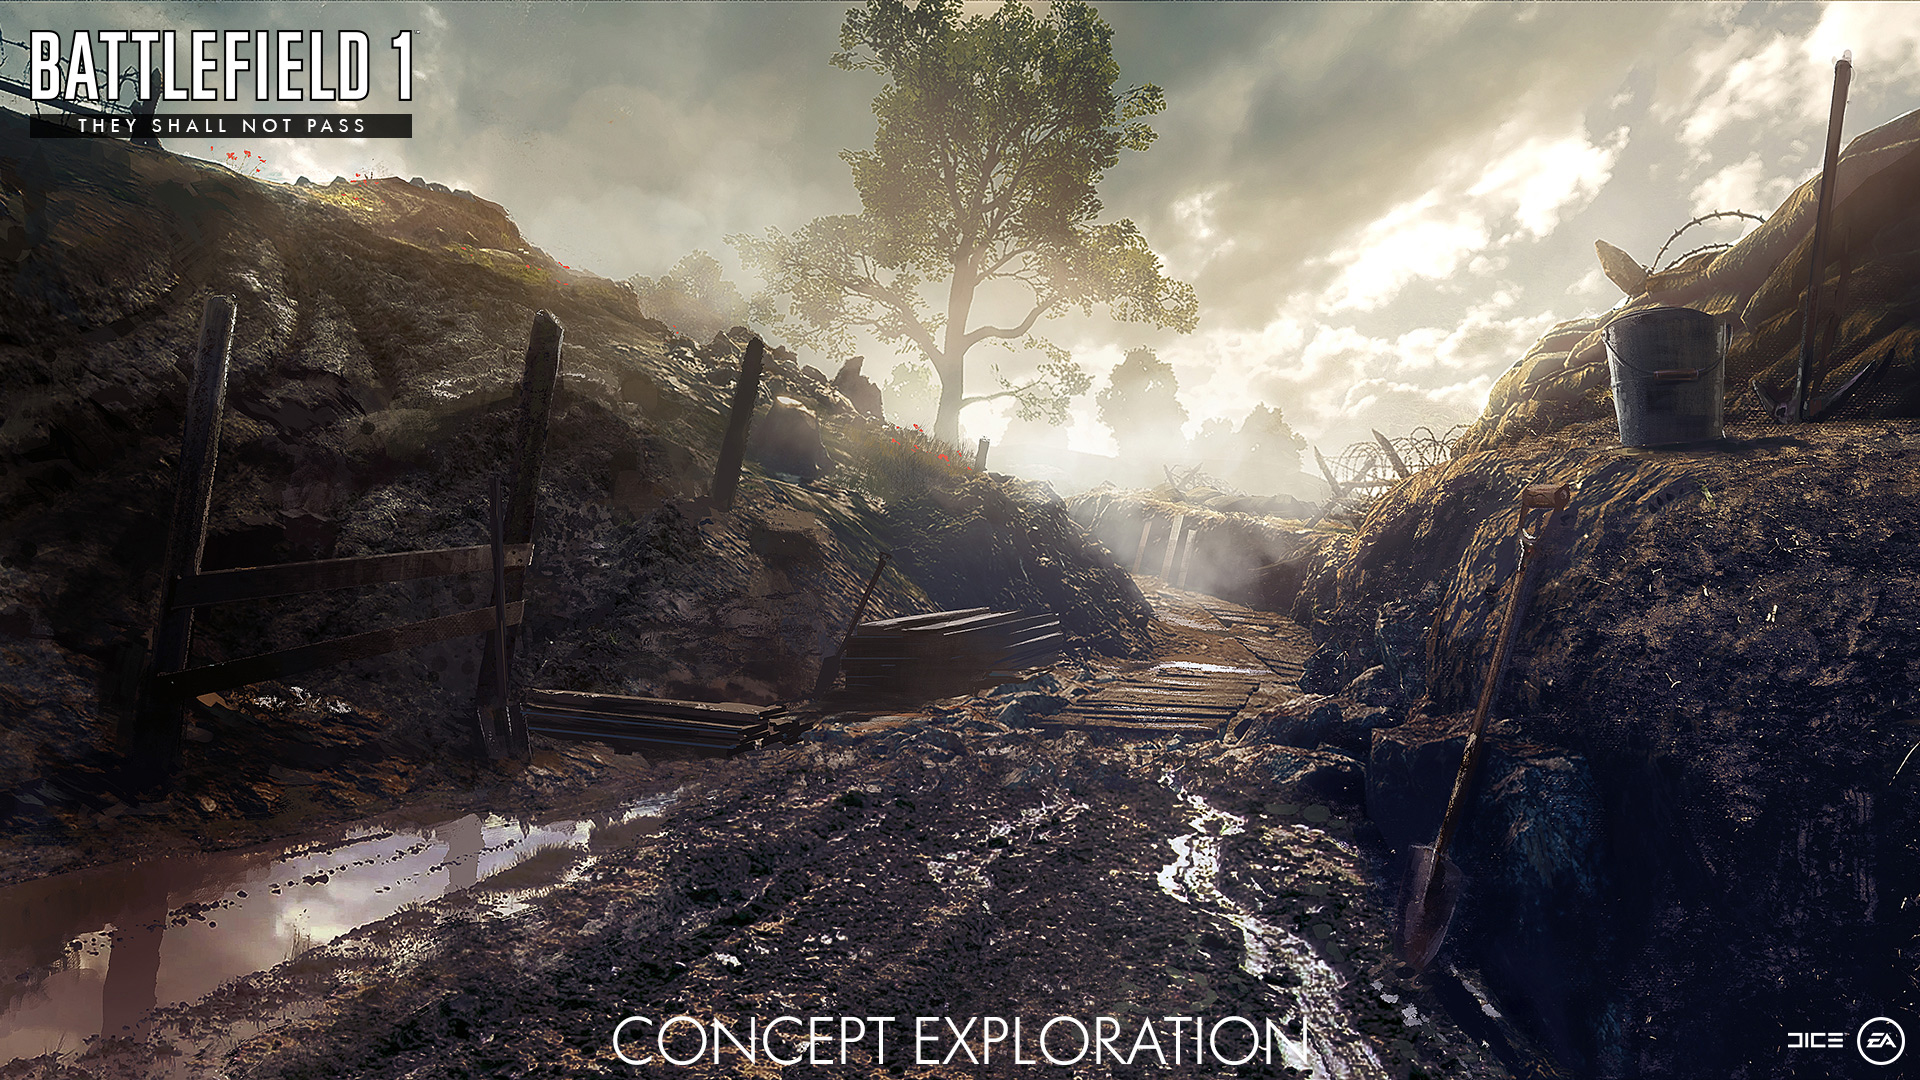 Battlefield 1: Concept-Art vom DLC They Shall Not Pass – Realismus pur